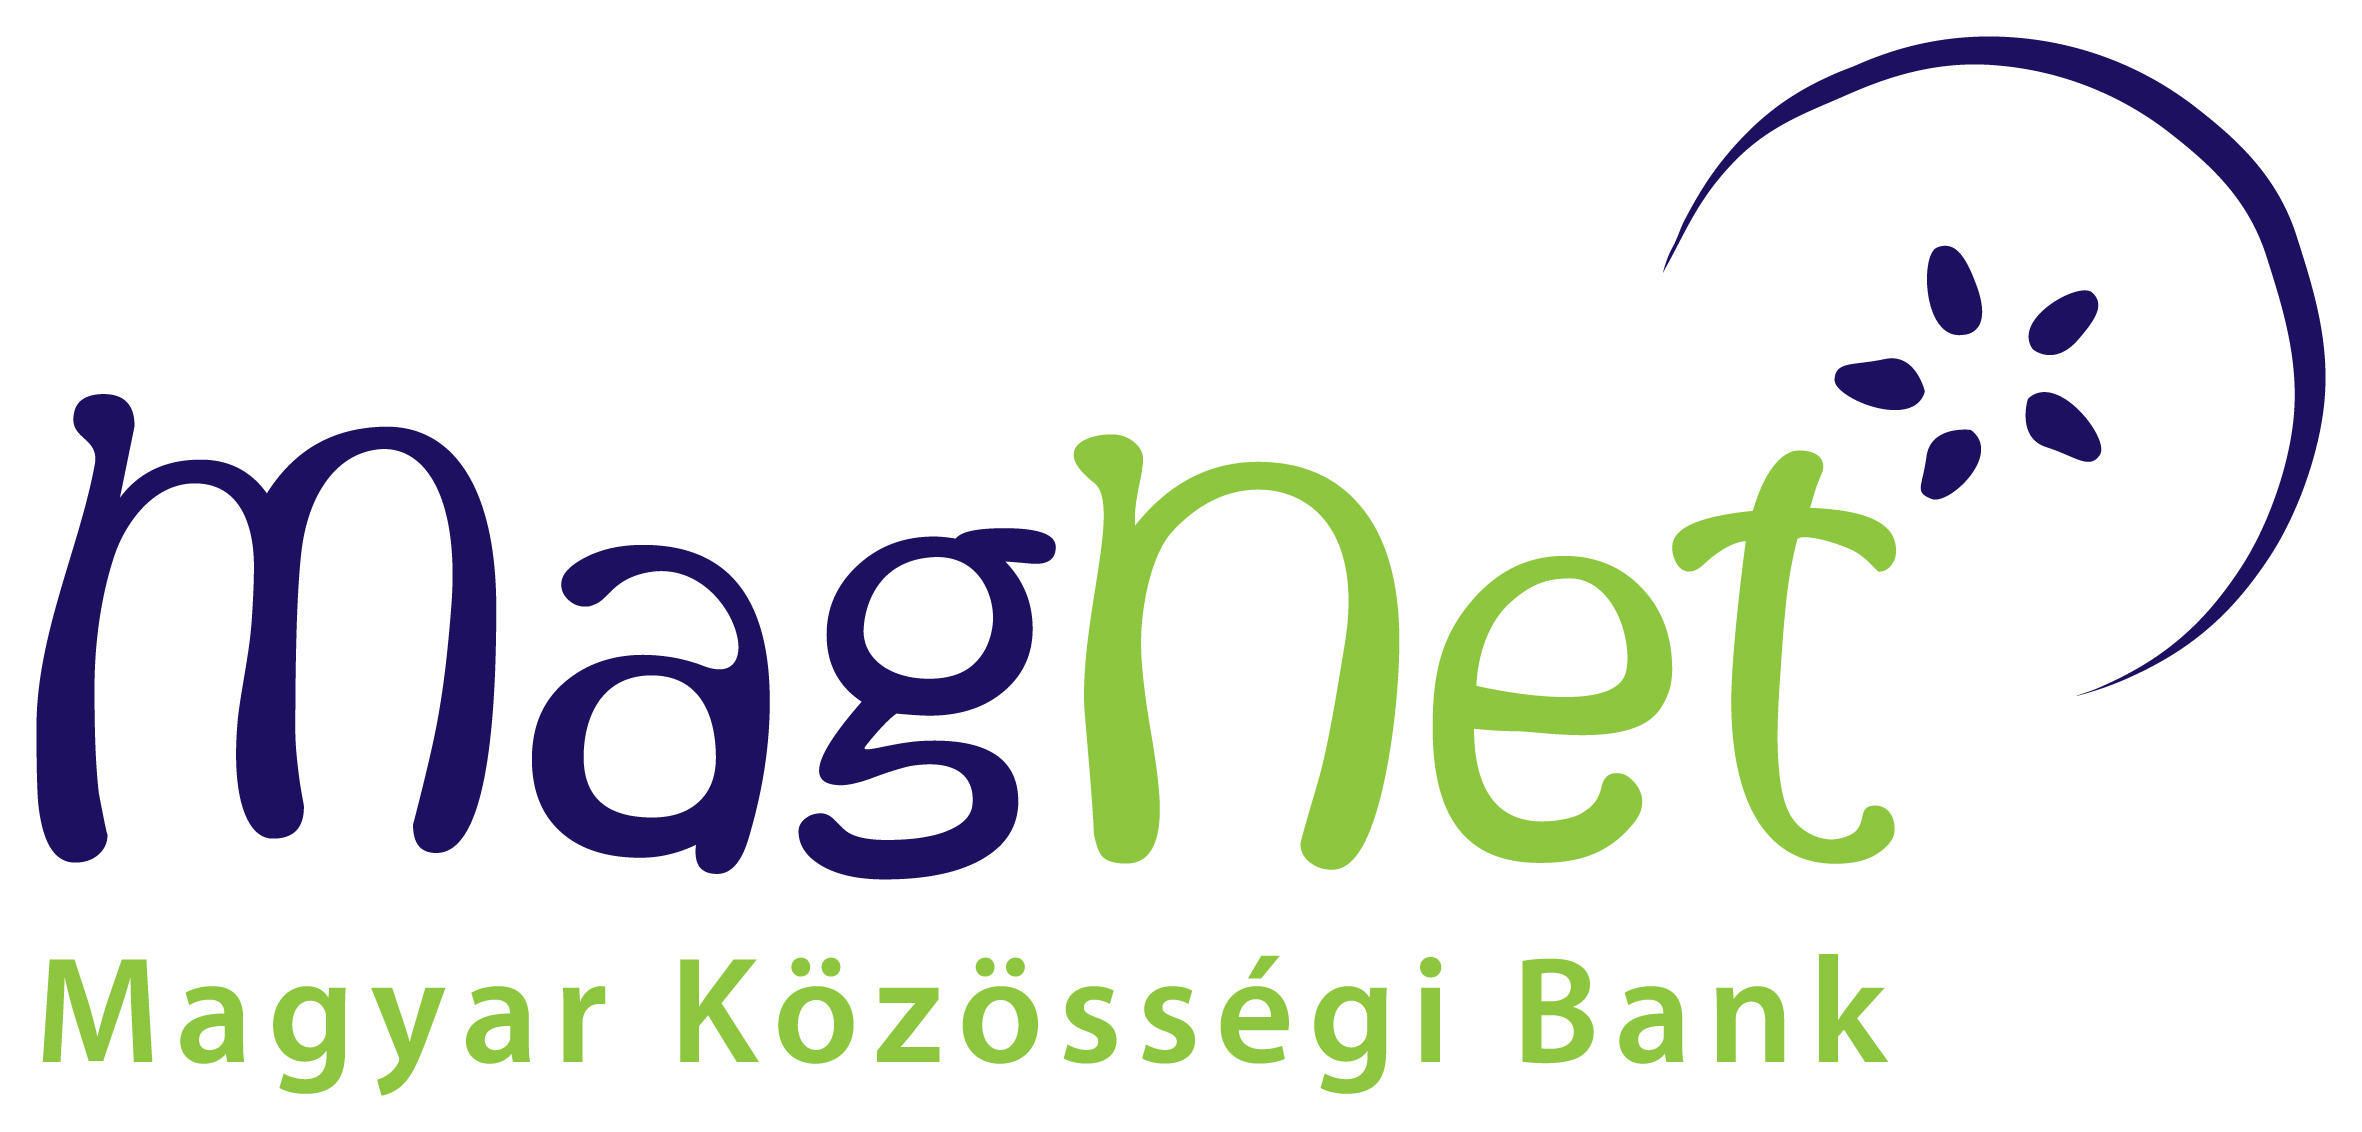 Magnet Bank - Magyar Közösségi Bank